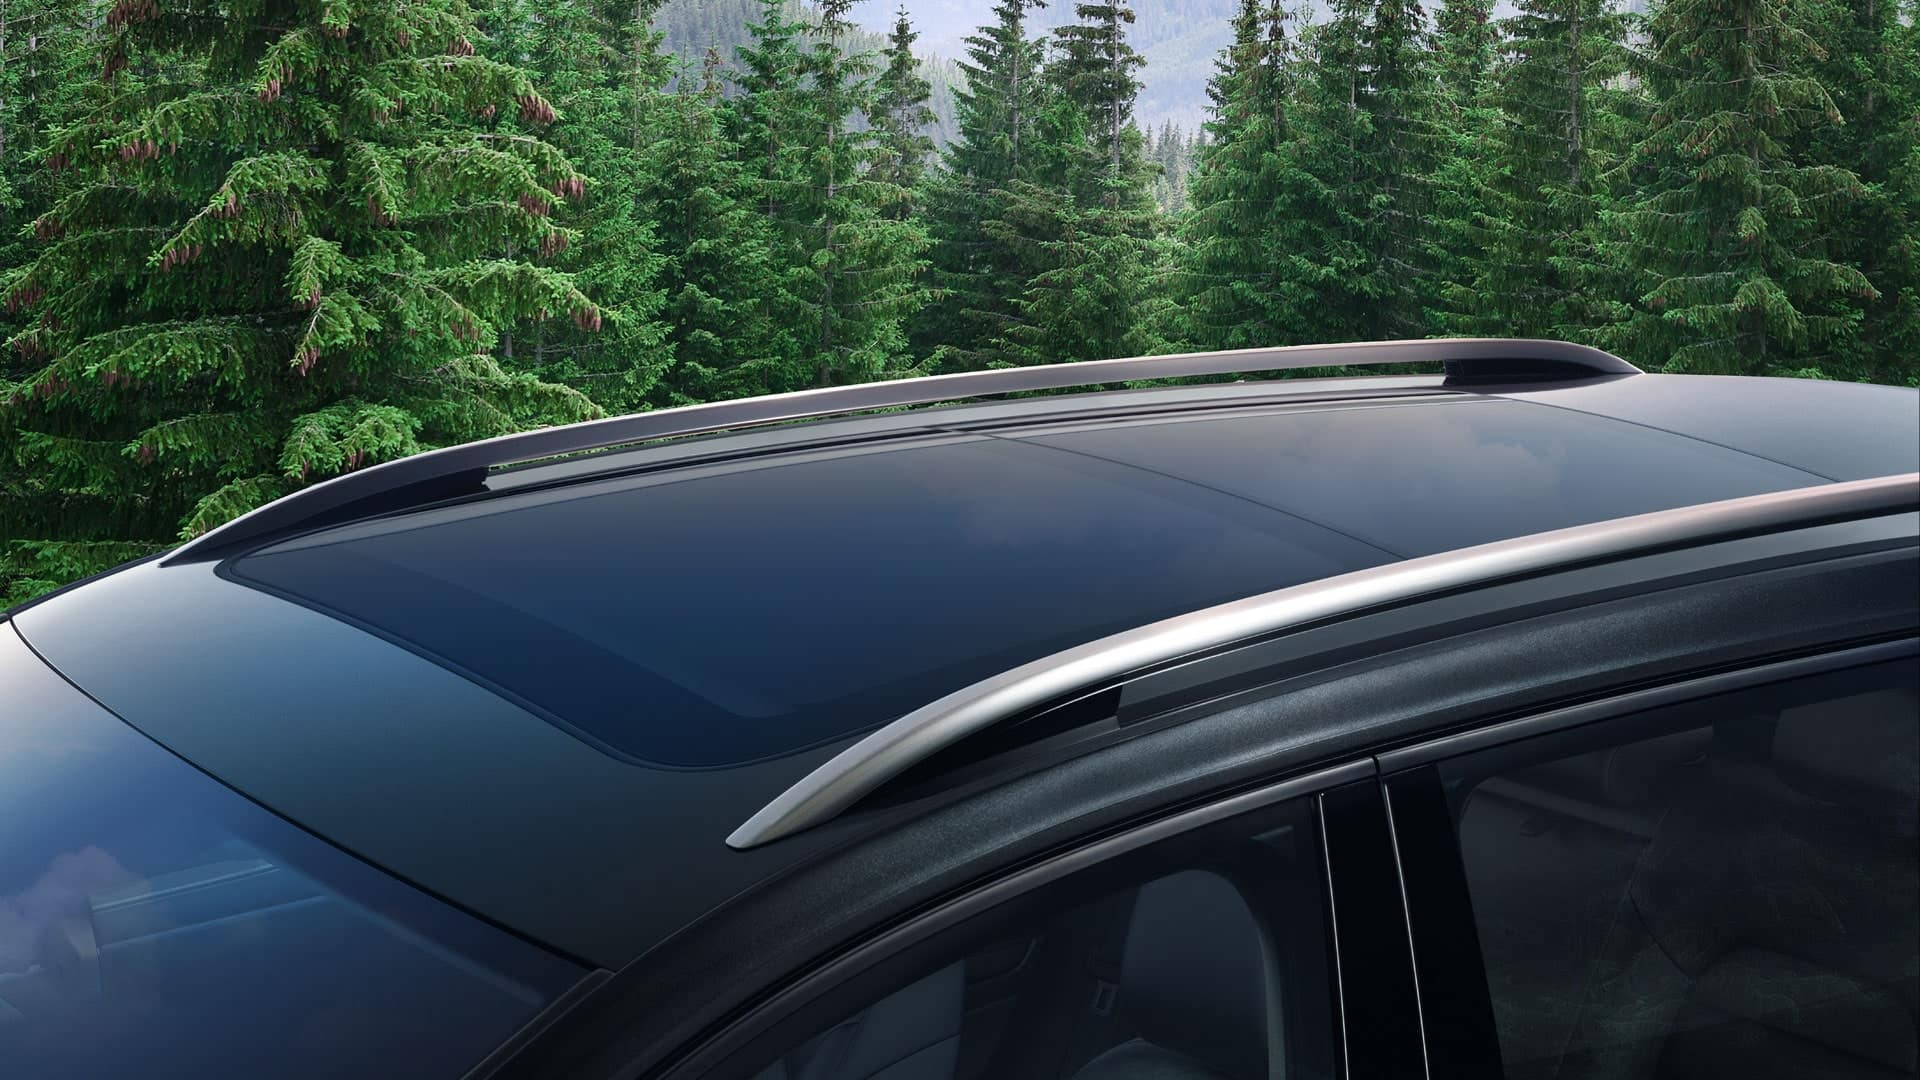 2019 VW Golf Alltrack roof rails